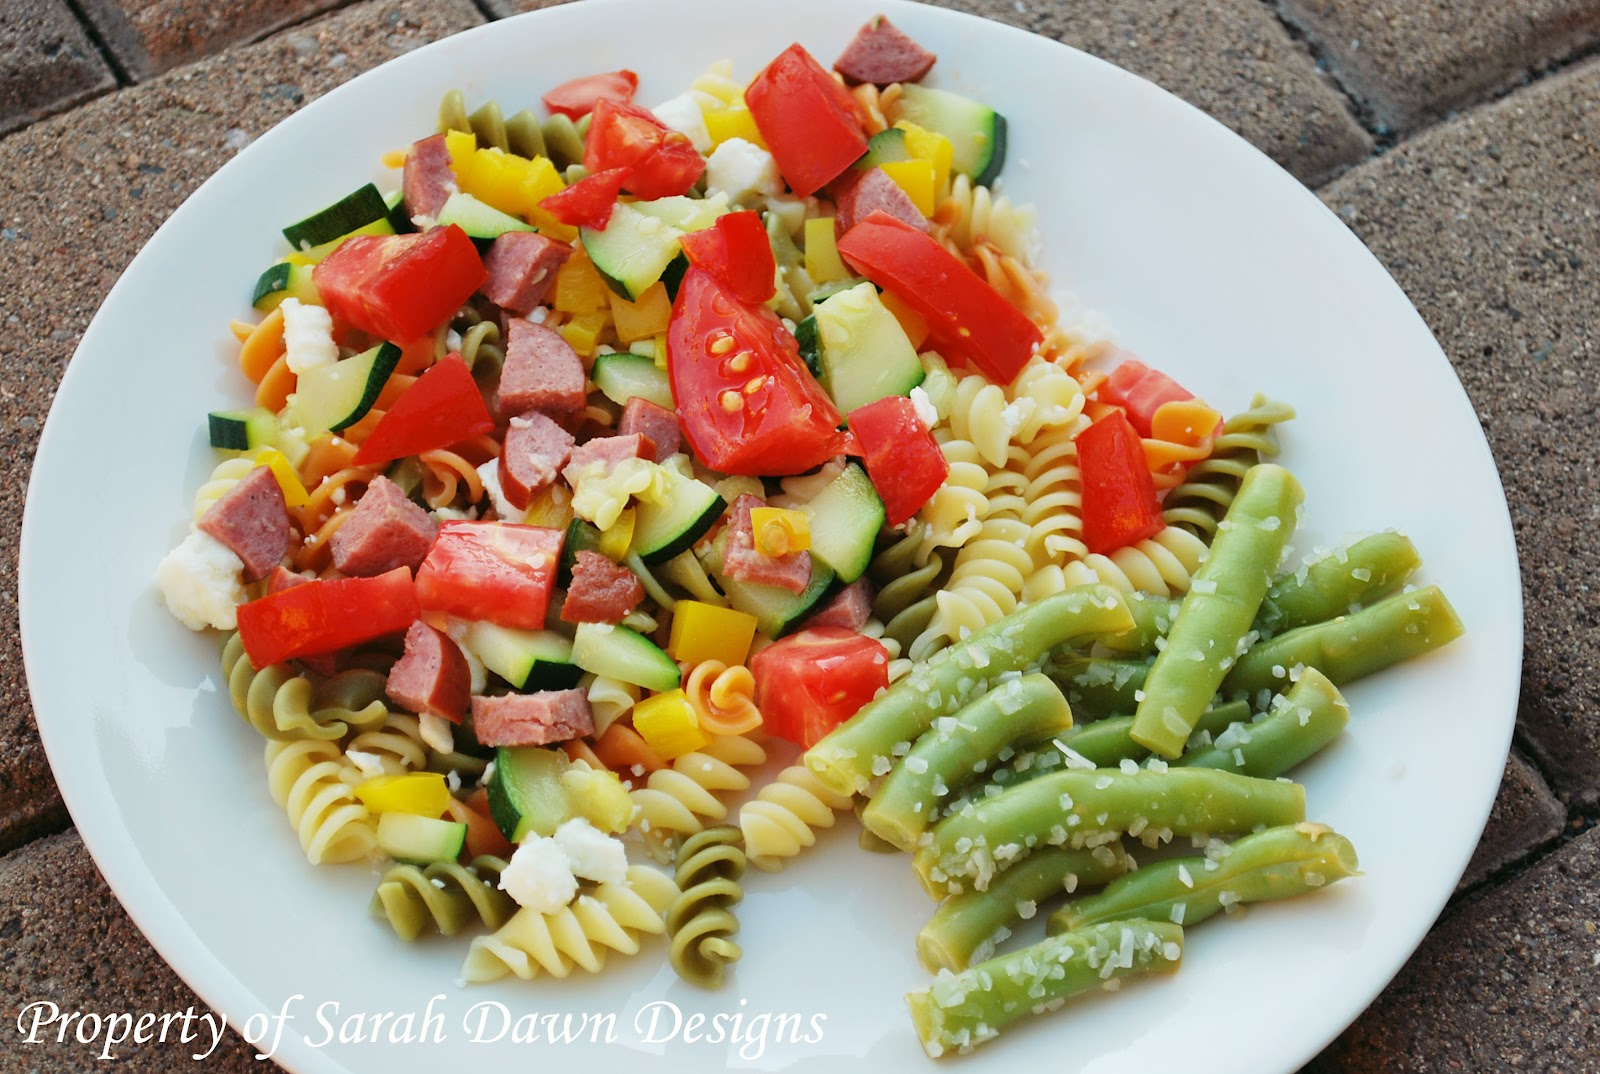 Pictures Of Healthy Dinner Meals